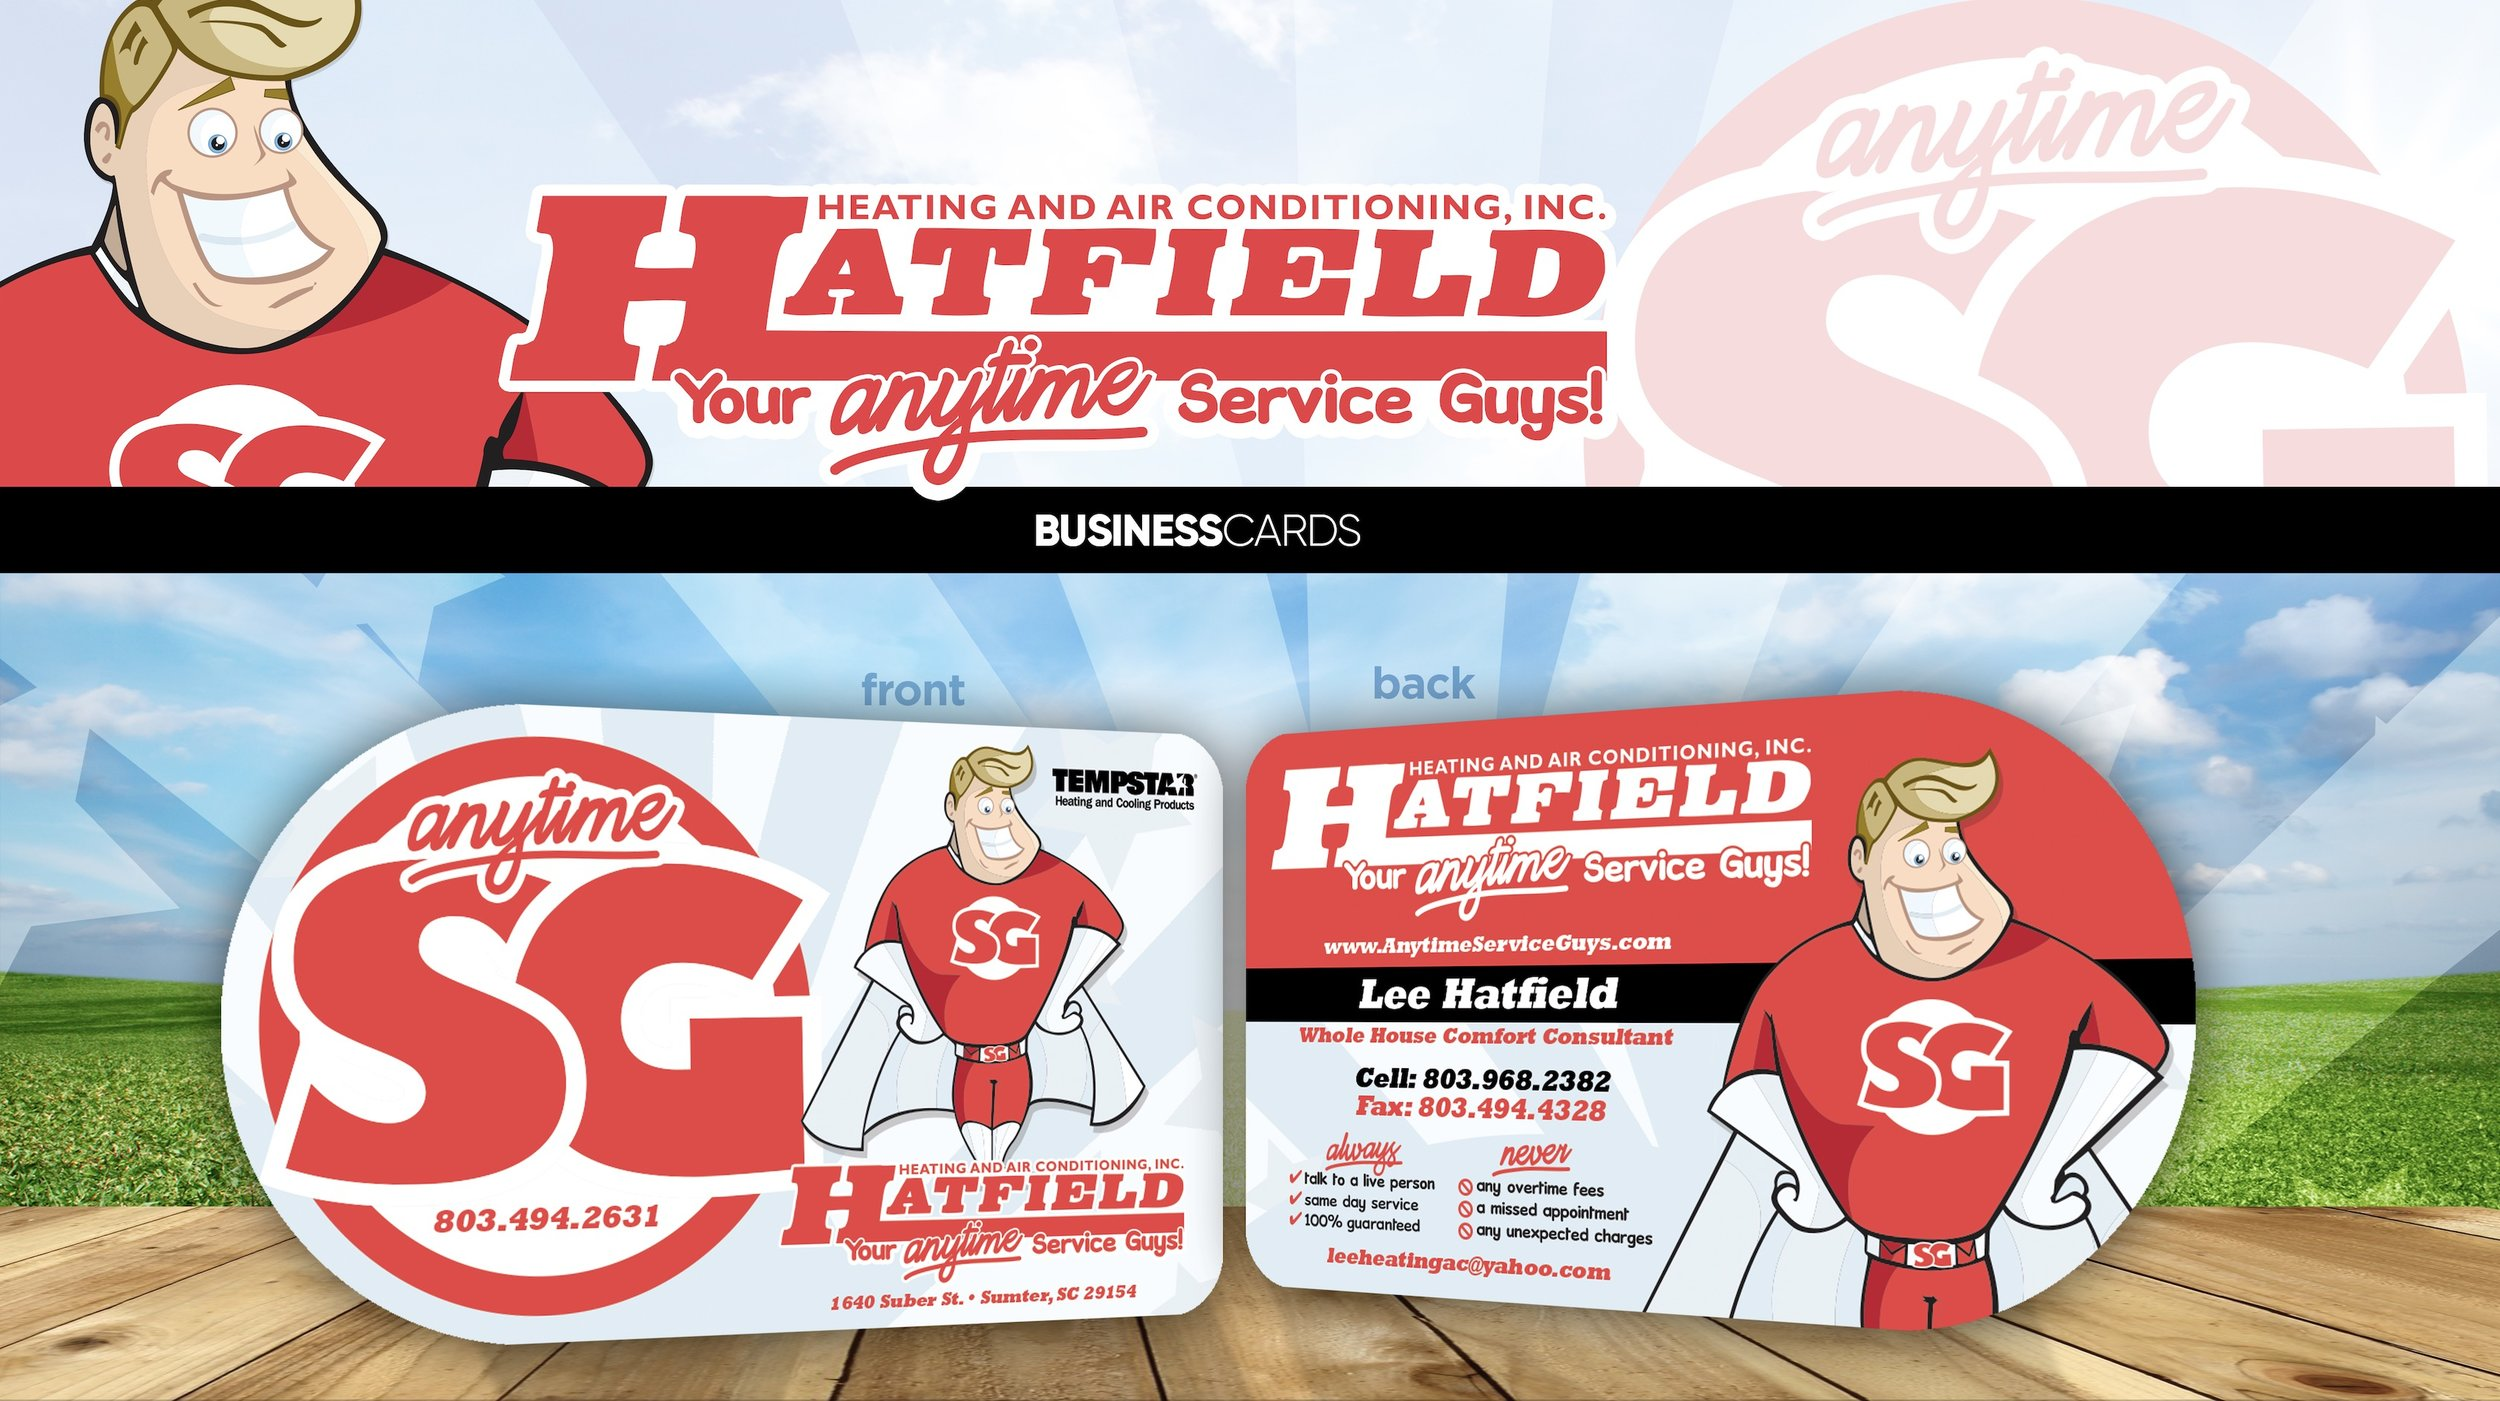 Business card project for Hatfield Heating and Air Conditioning Inc. Cards were printed on 16pt UV High Gloss cardstock with custom die cutting.